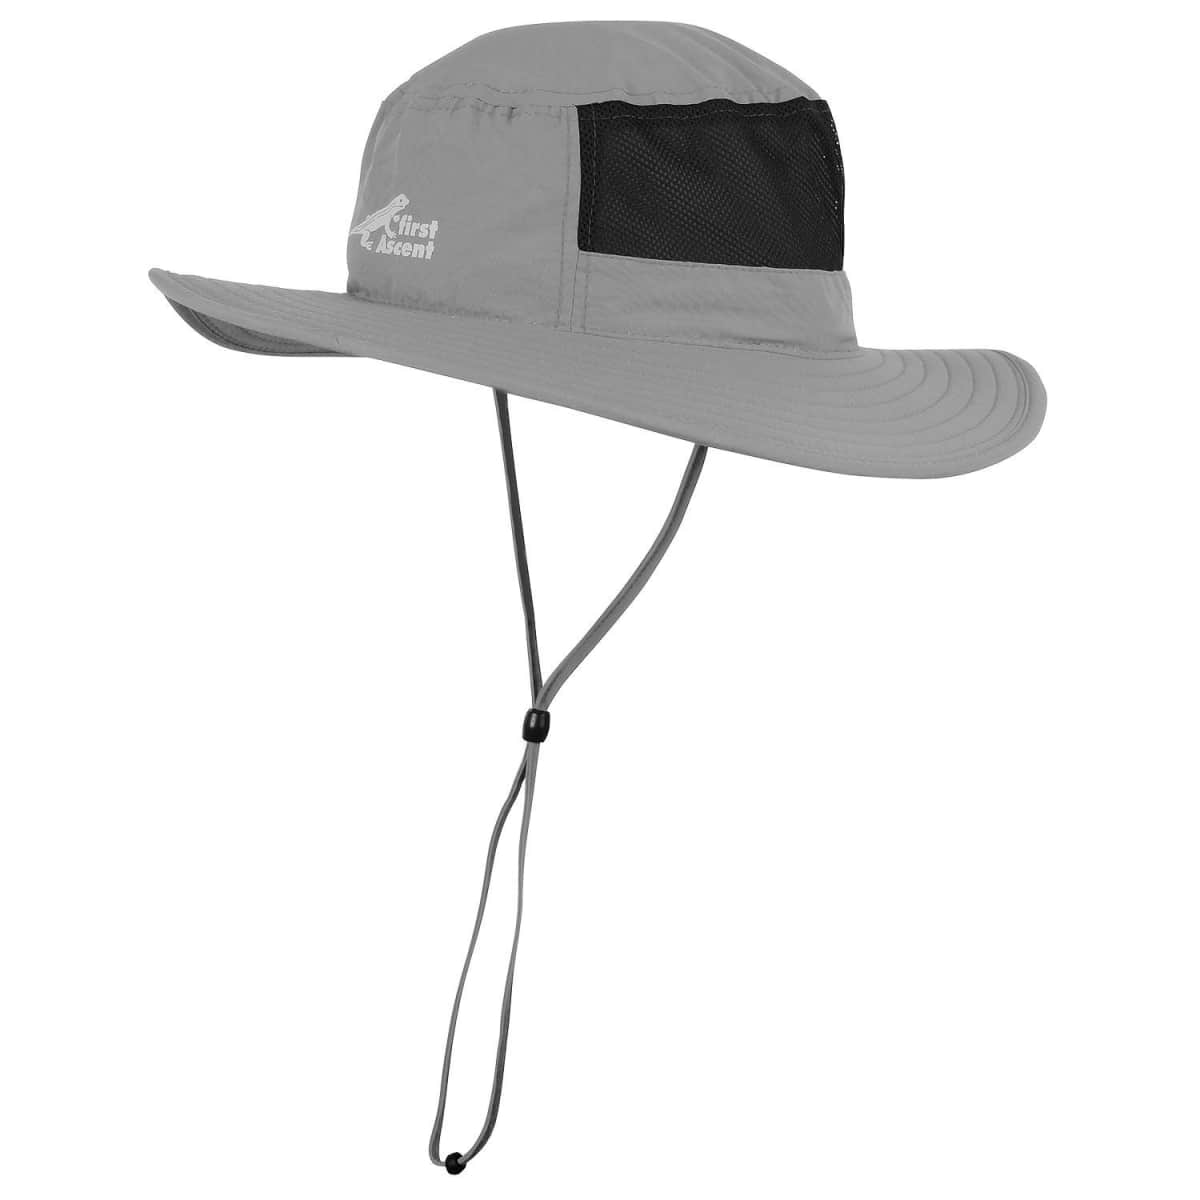 First Ascent Dundee Hat b673ce8f84b